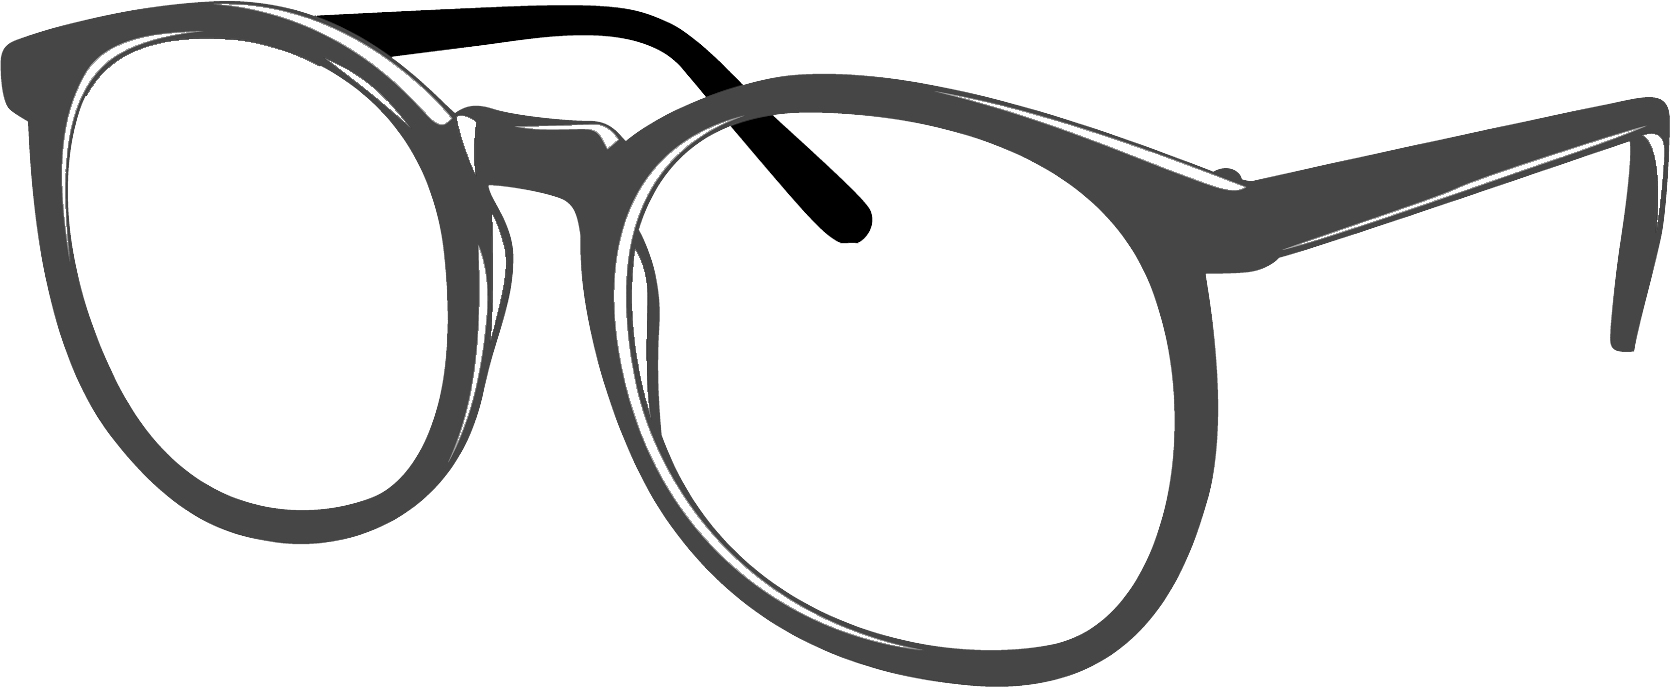 Optical glasses cliparts jpg library library Free Eye Glasses Cliparts, Download Free Clip Art, Free Clip ... jpg library library